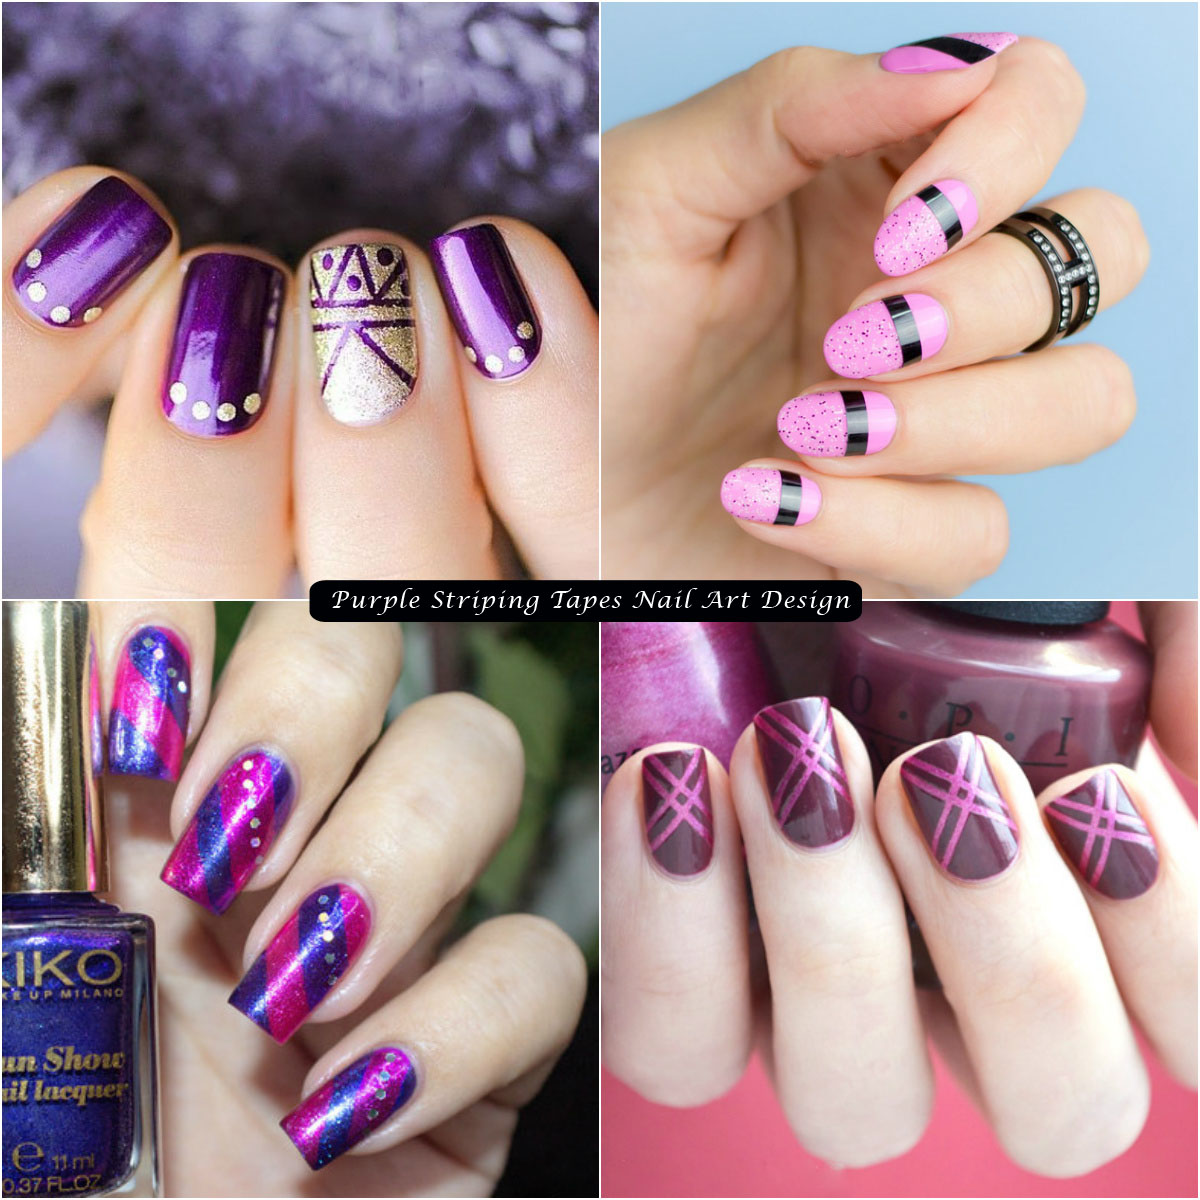 Purple Striping Tapes Nail Art Design